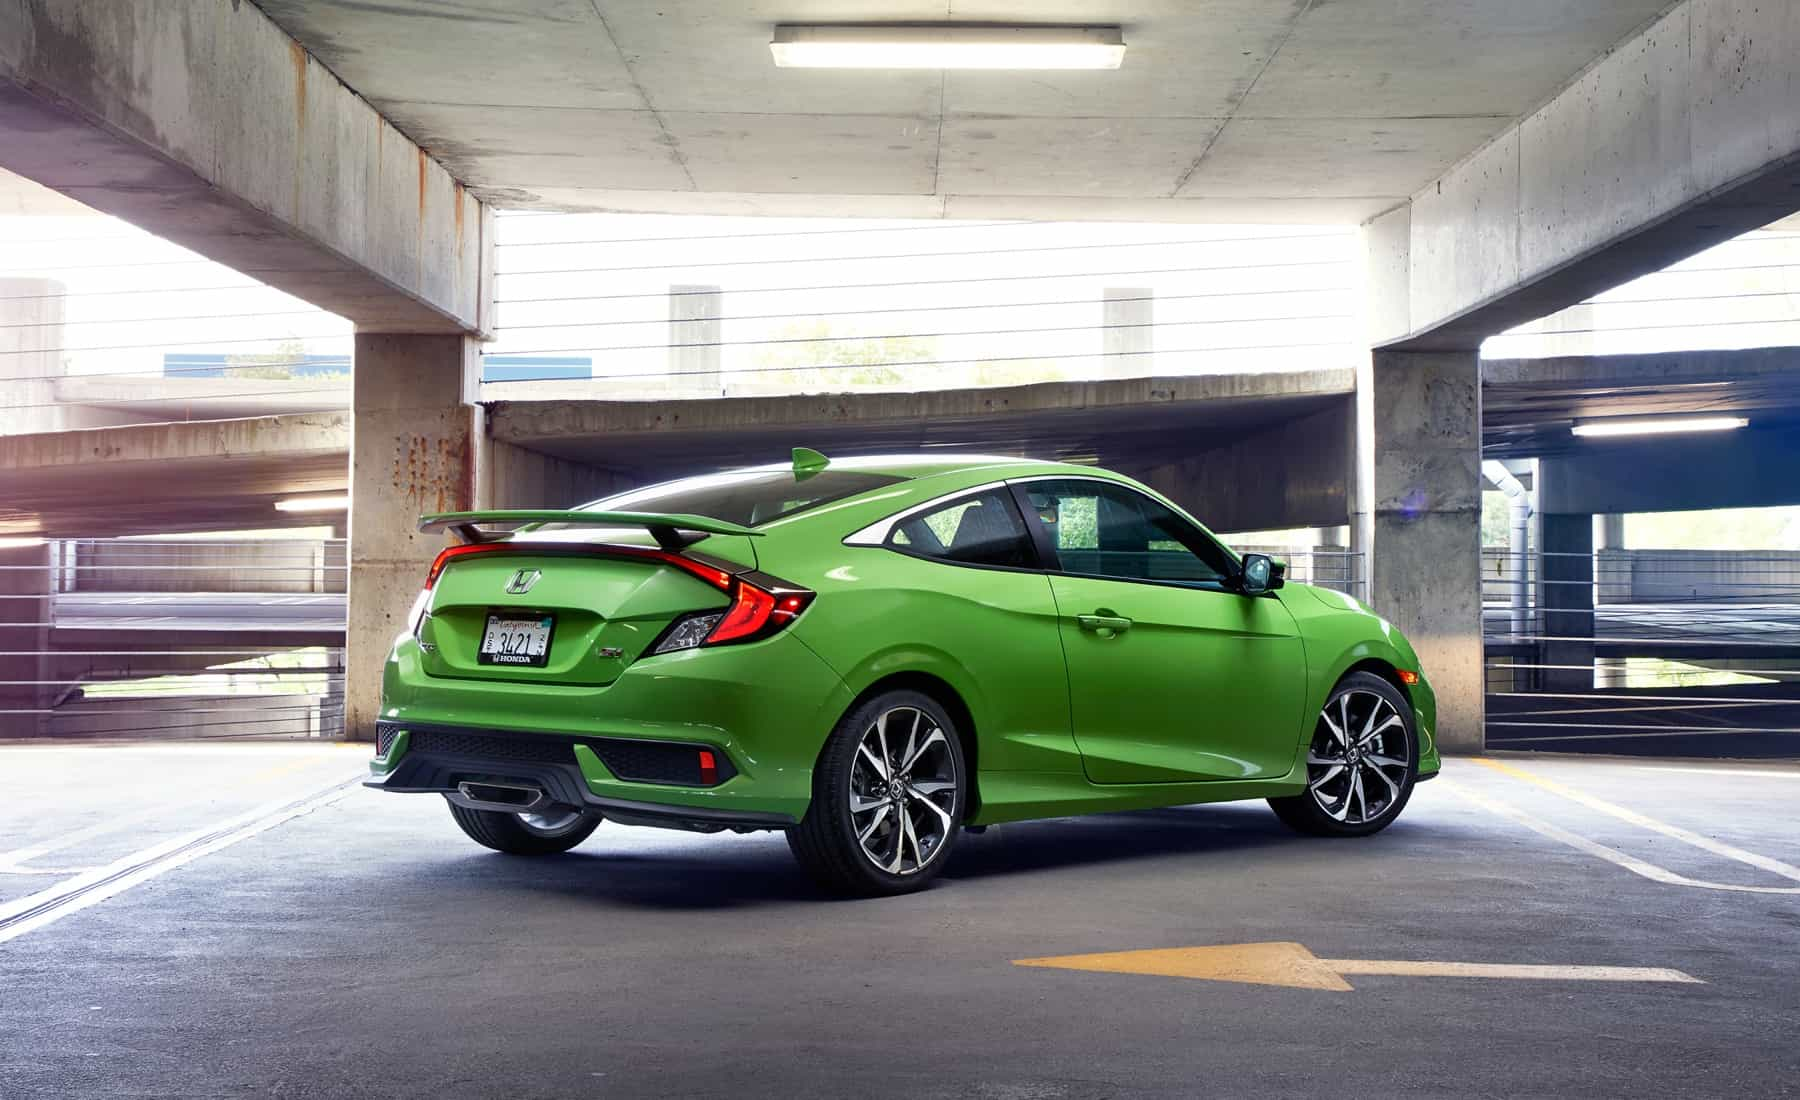 2017 honda civic coupe cars exclusive videos and photos updates. Black Bedroom Furniture Sets. Home Design Ideas